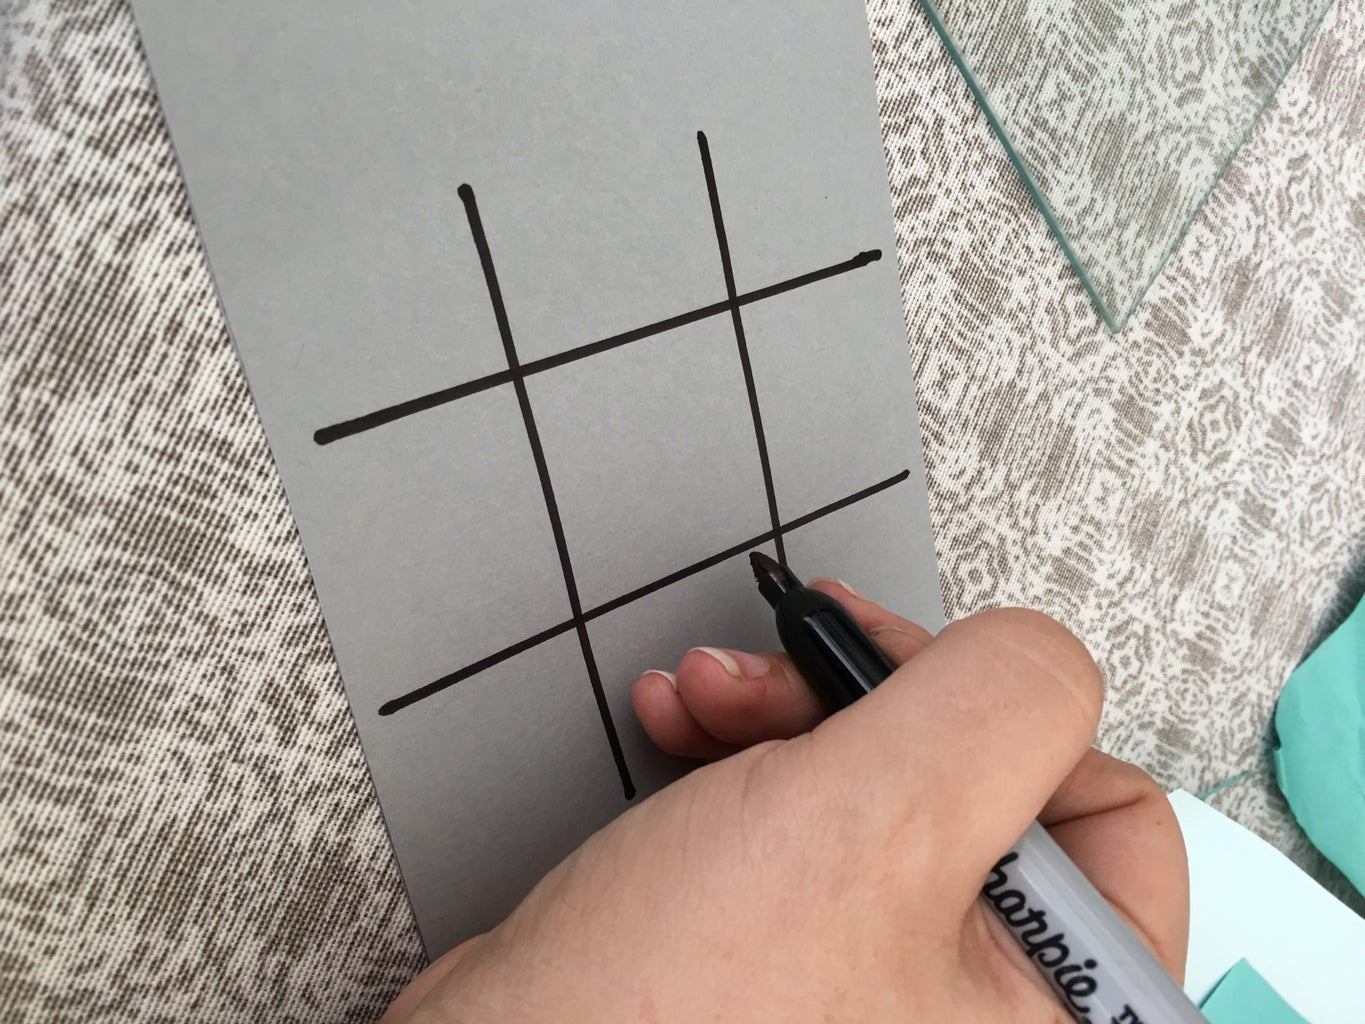 Use Ruler and Marker to Create Game